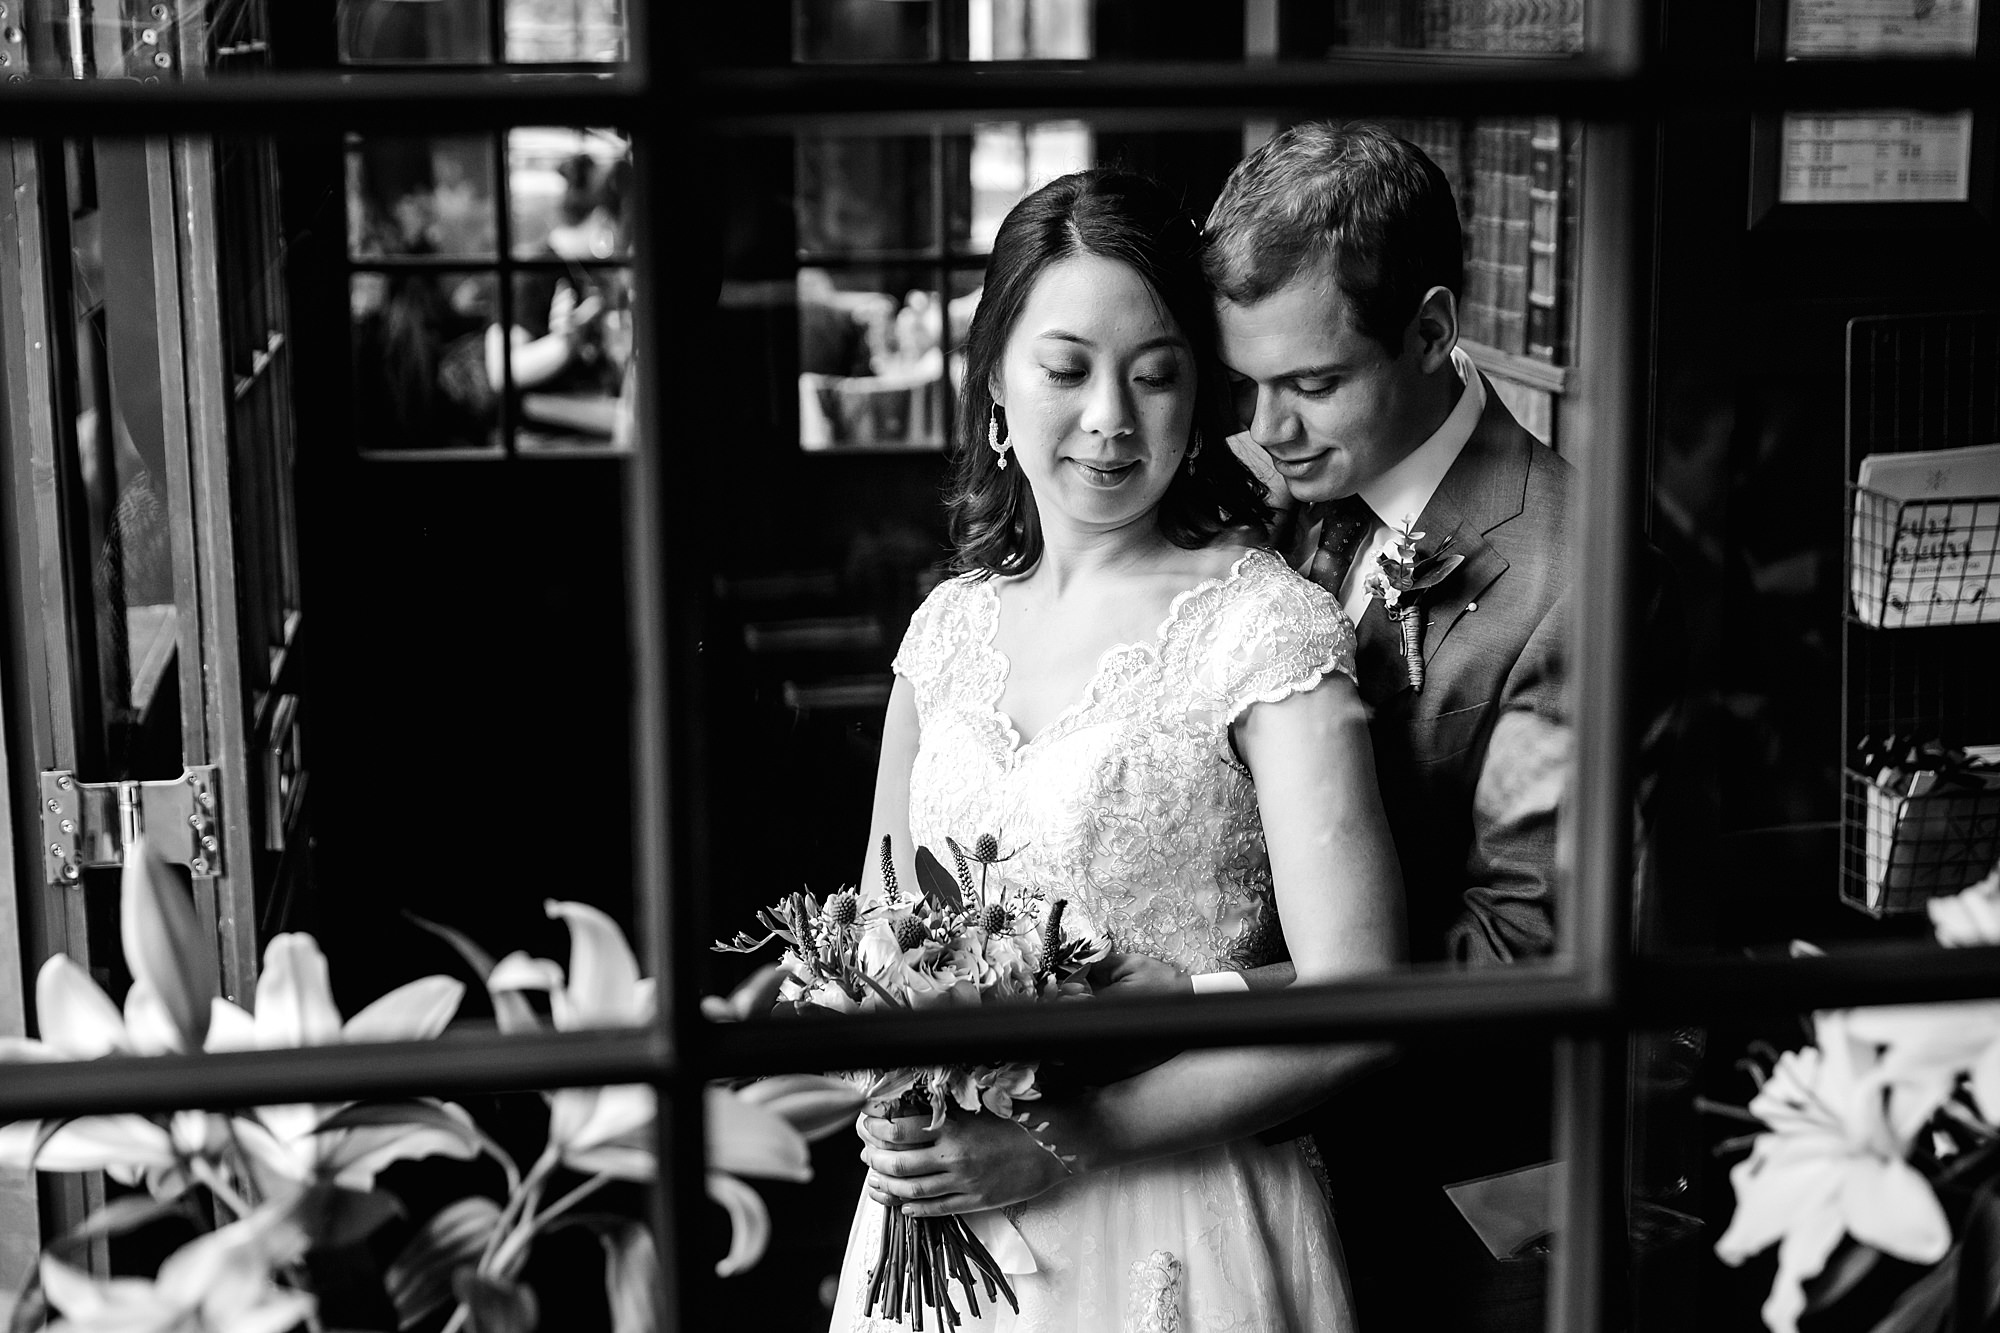 Wandsworth pub wedding bride and groom viewed through window pane